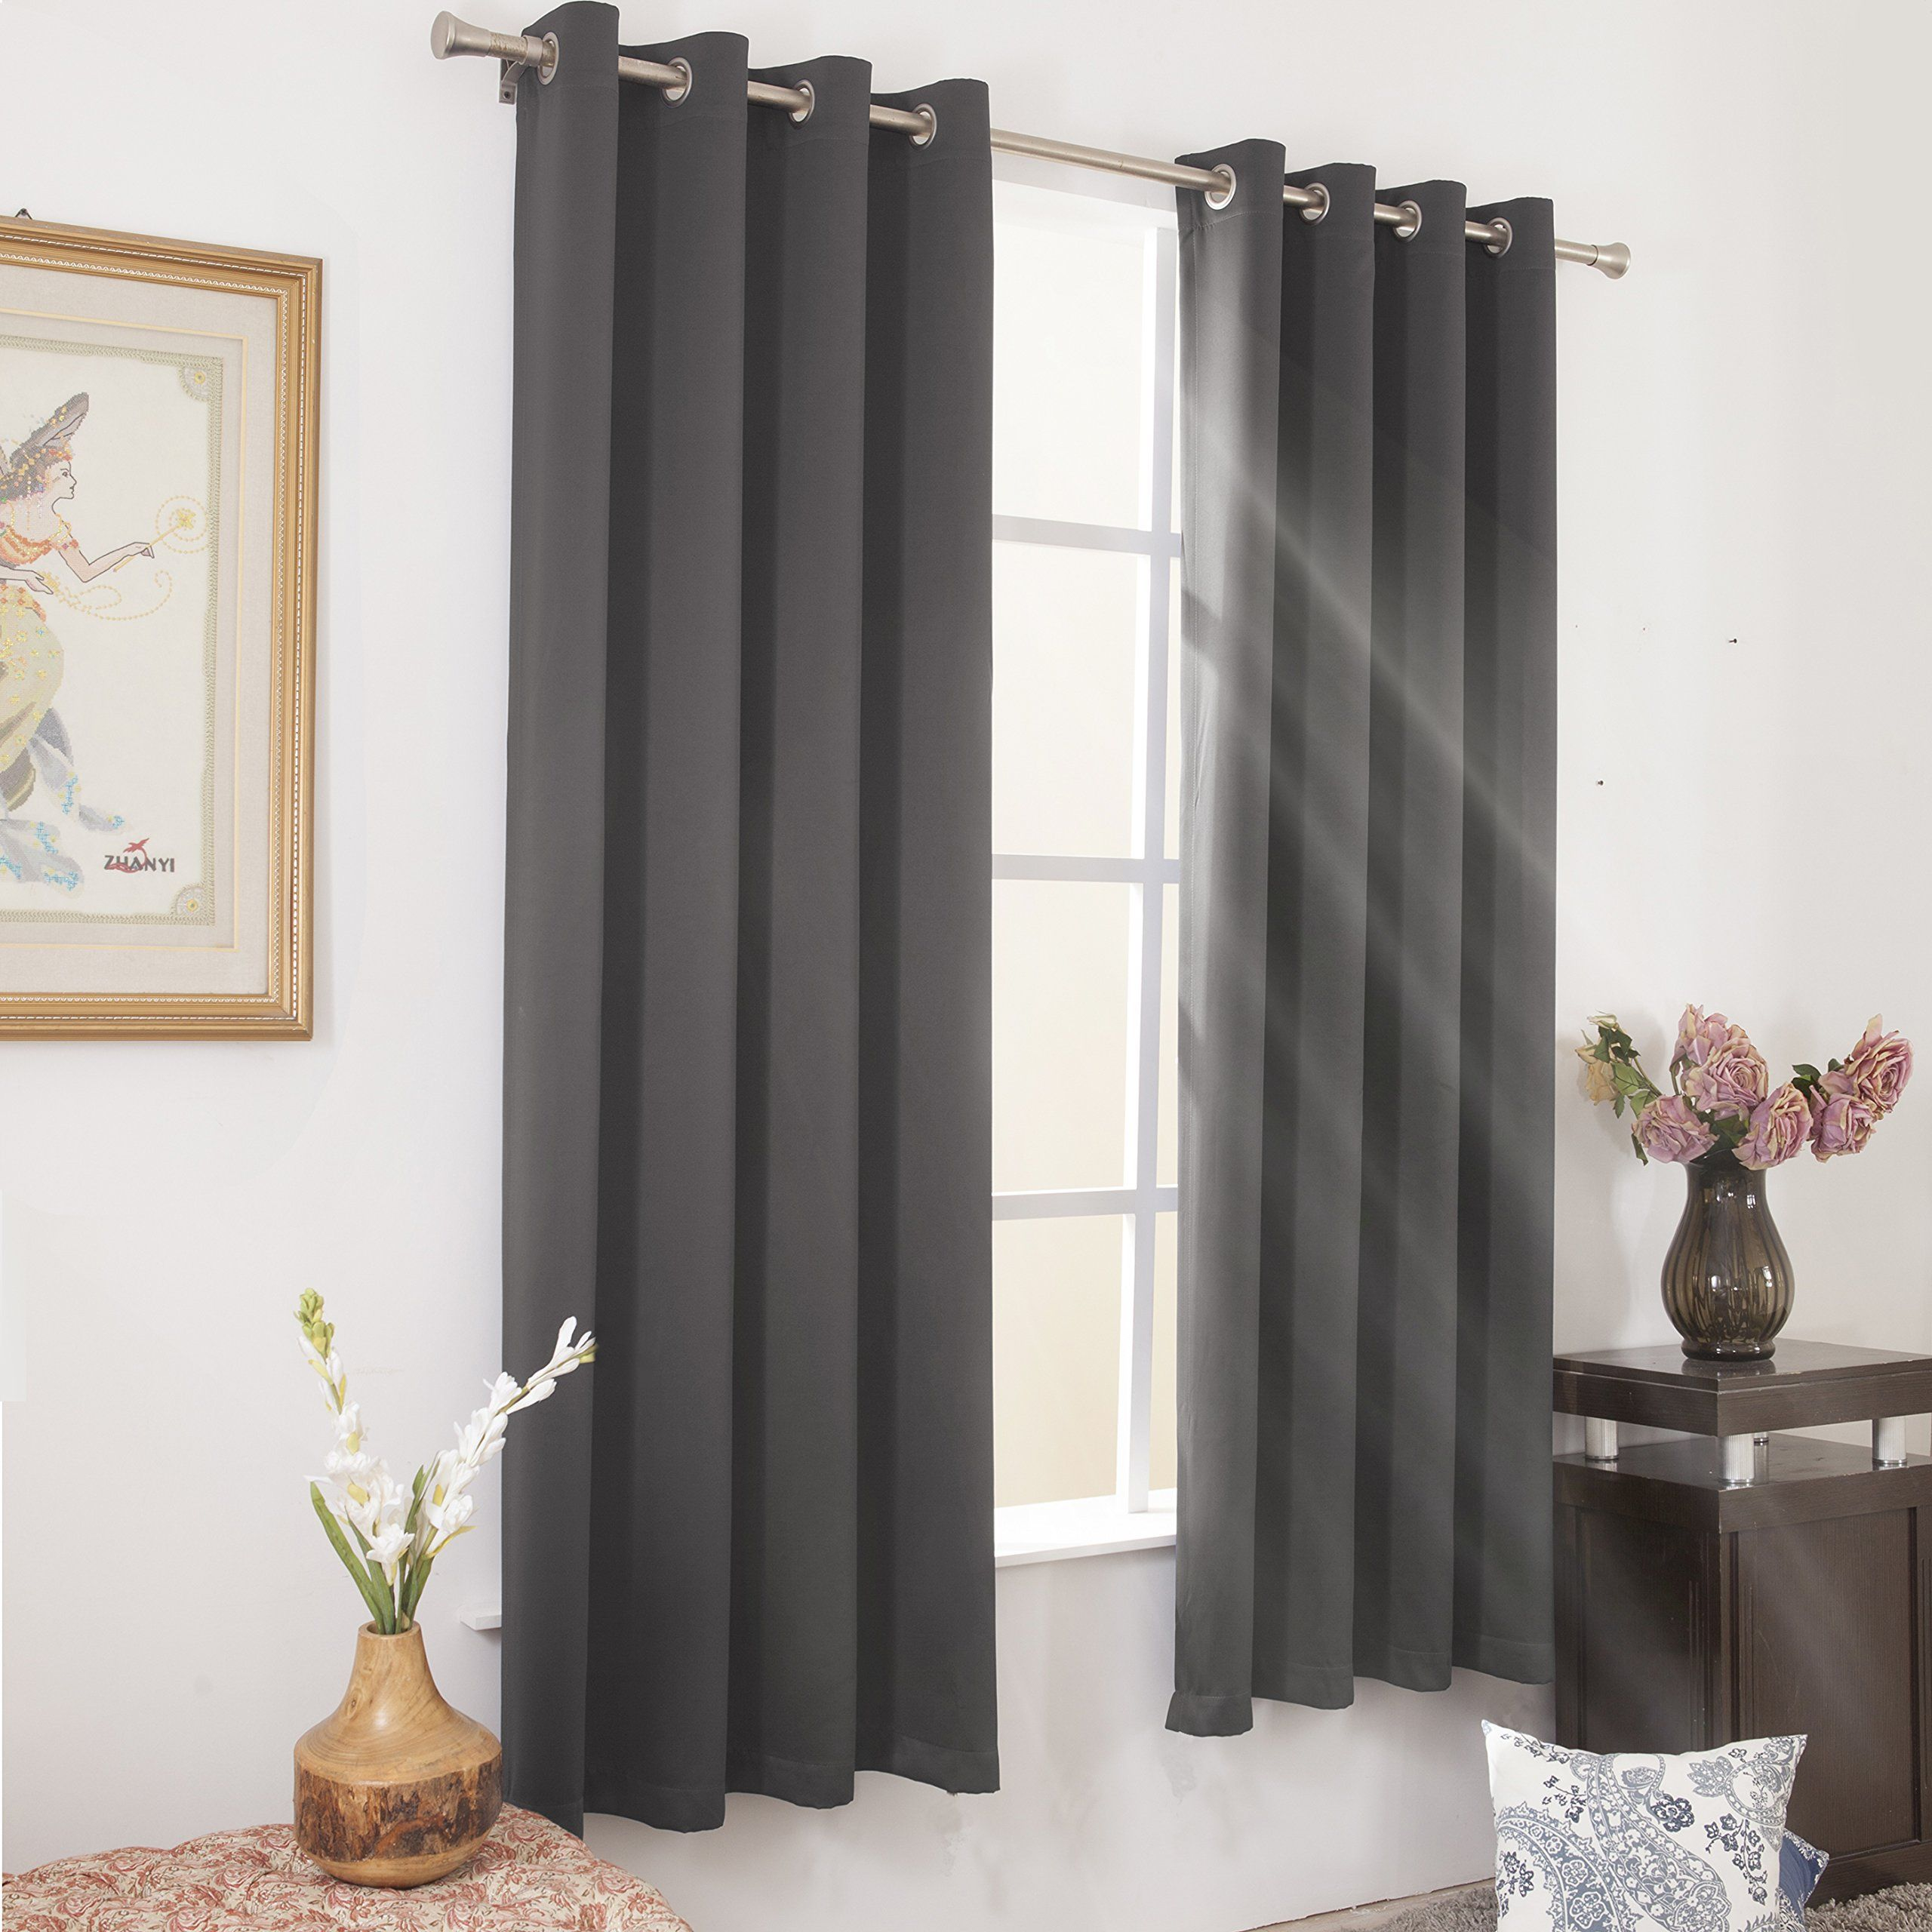 Short Blackout Curtains For Bedroom Http Www Otoseriilan Com Window Treatments Bedroom Curtains Bedroom Grey Blackout Curtains